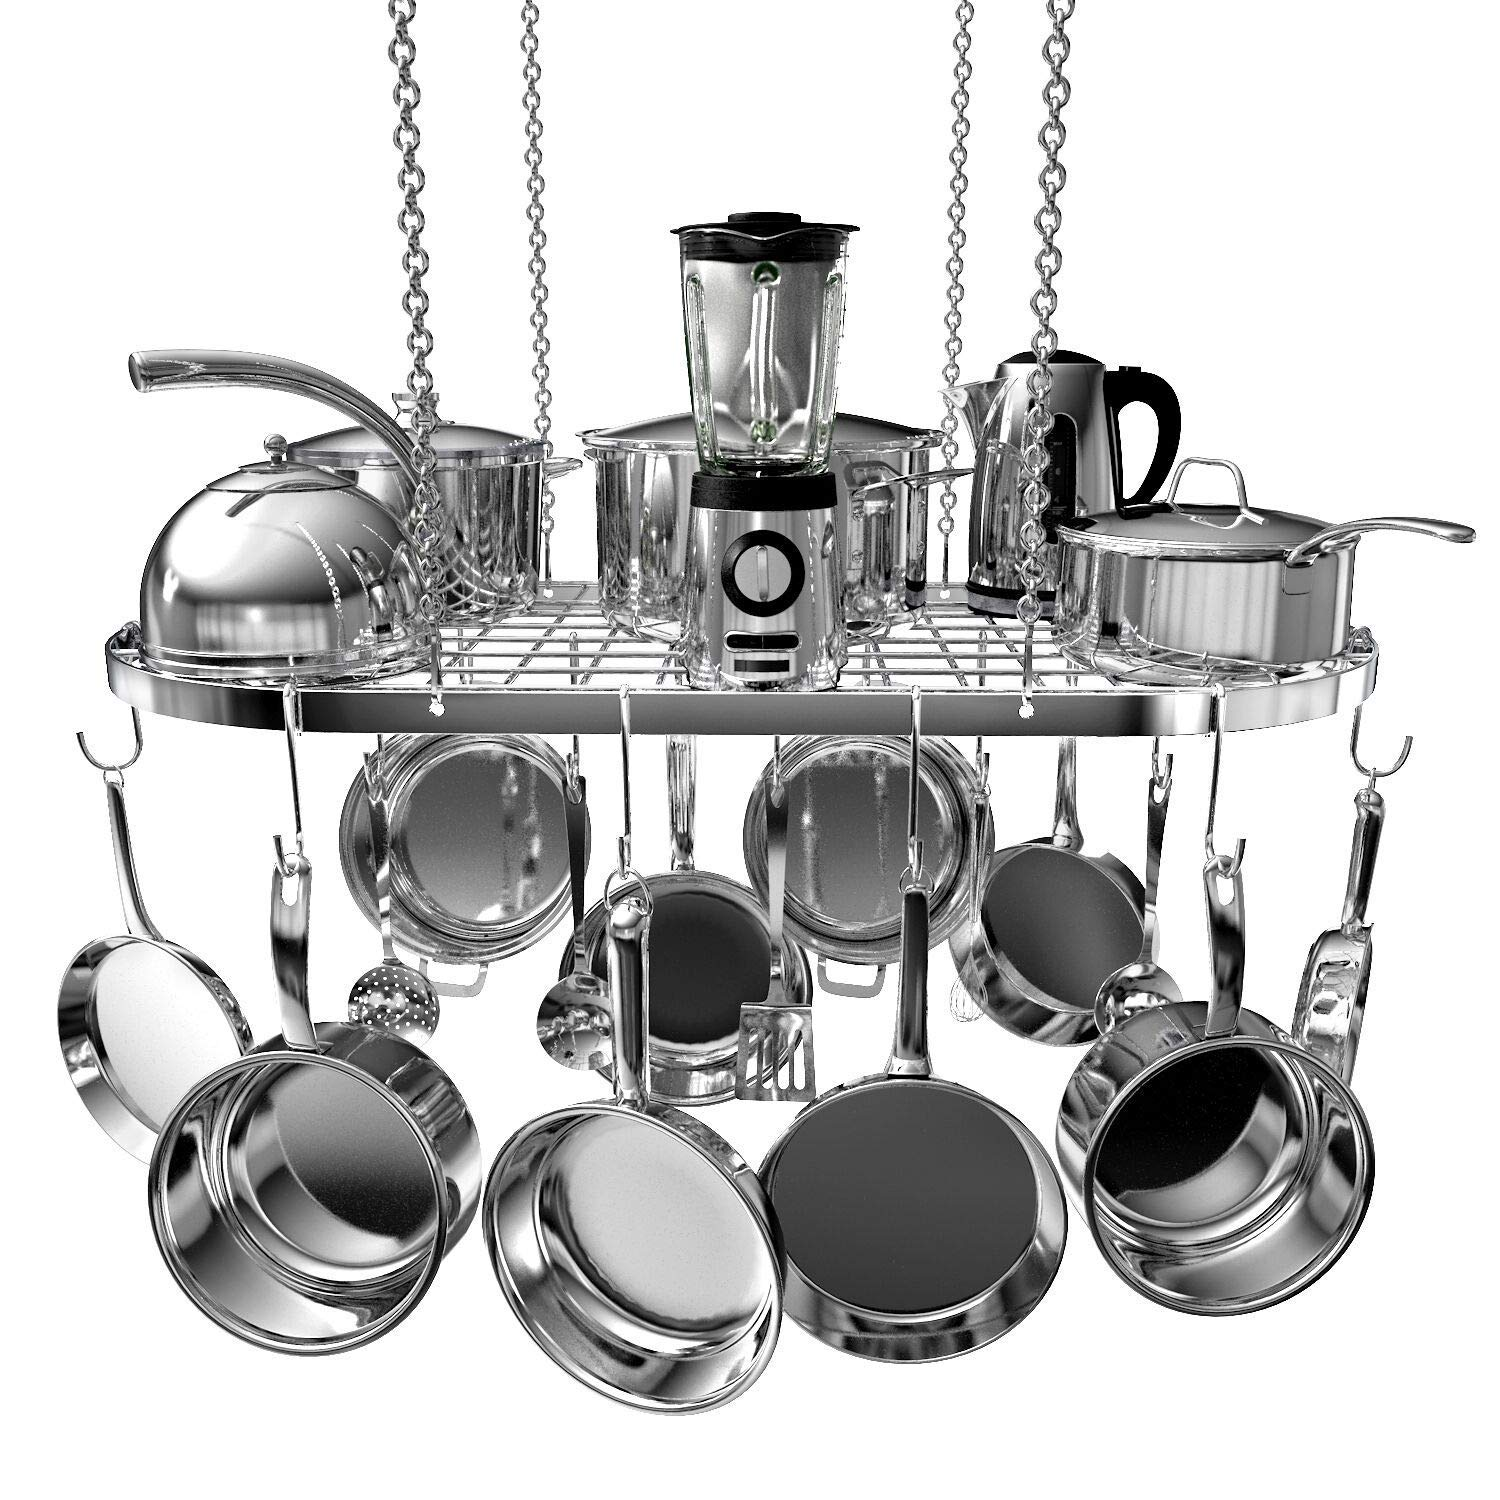 Buy One Get Five FREE- SKATCO Pot Organizer Rack -All Pots & Pans Are Included FREE - Pots & Pans Organizer - Heavy Duty Lids, Dishes, Pots and Pans Organizer - Pan Rack with 3 Use Methods